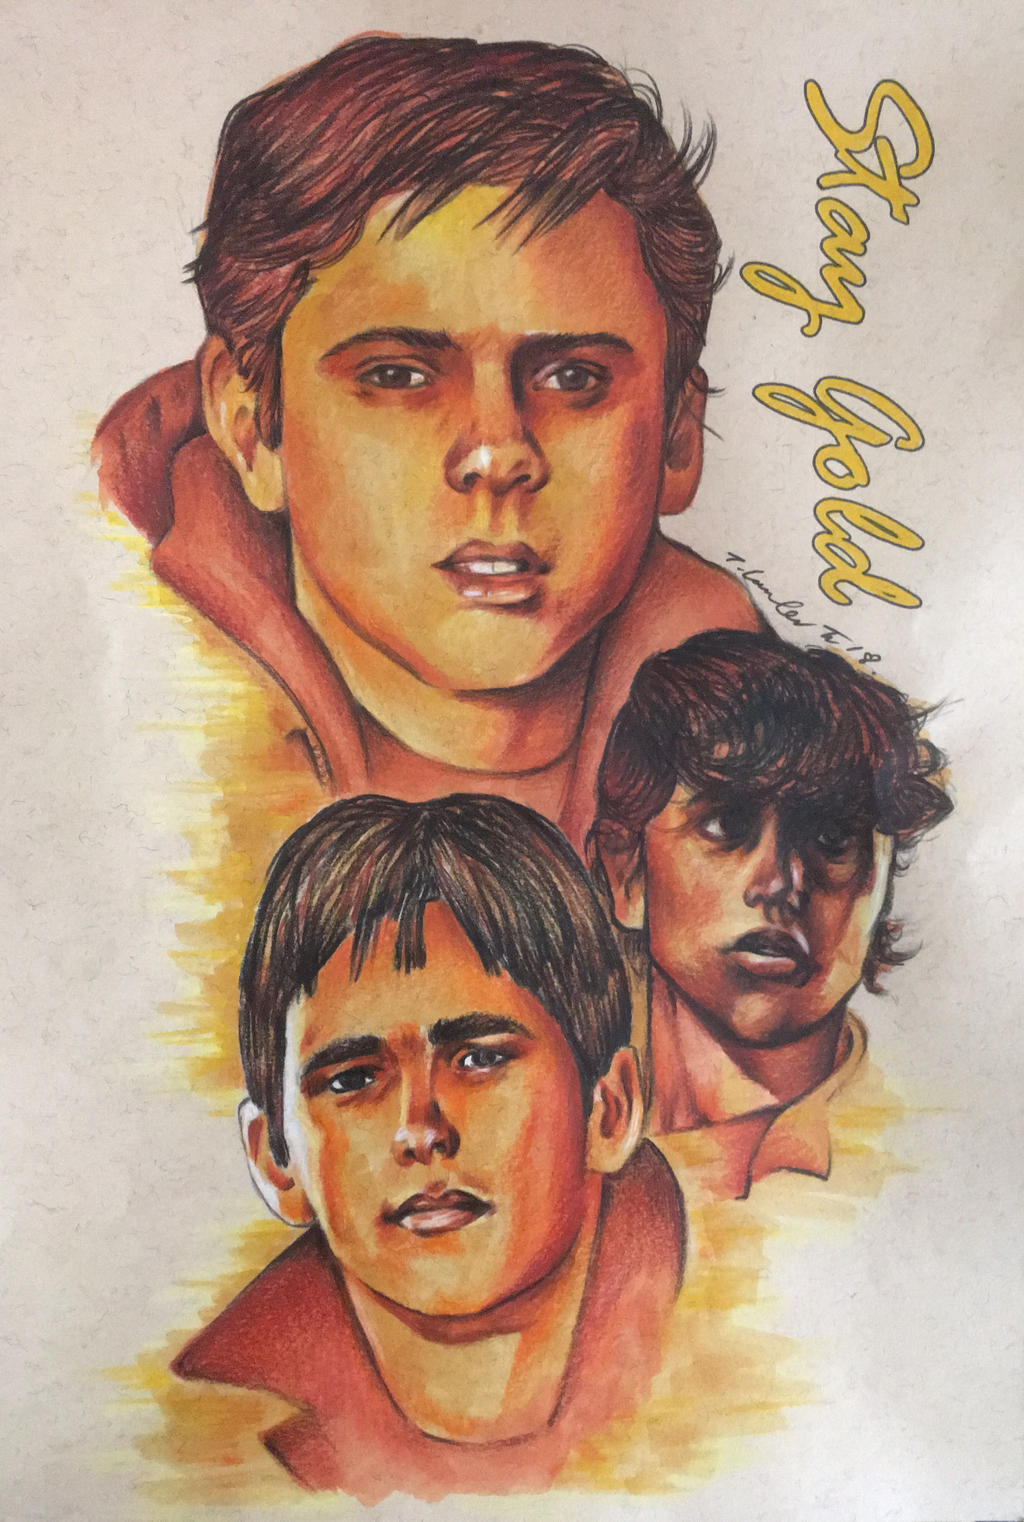 The Outsiders Stay Gold Ponyboy Matt Dillon By Billyboyuk On Deviantart Easily move forward or backward to get to the perfect spot. outsiders stay gold ponyboy matt dillon